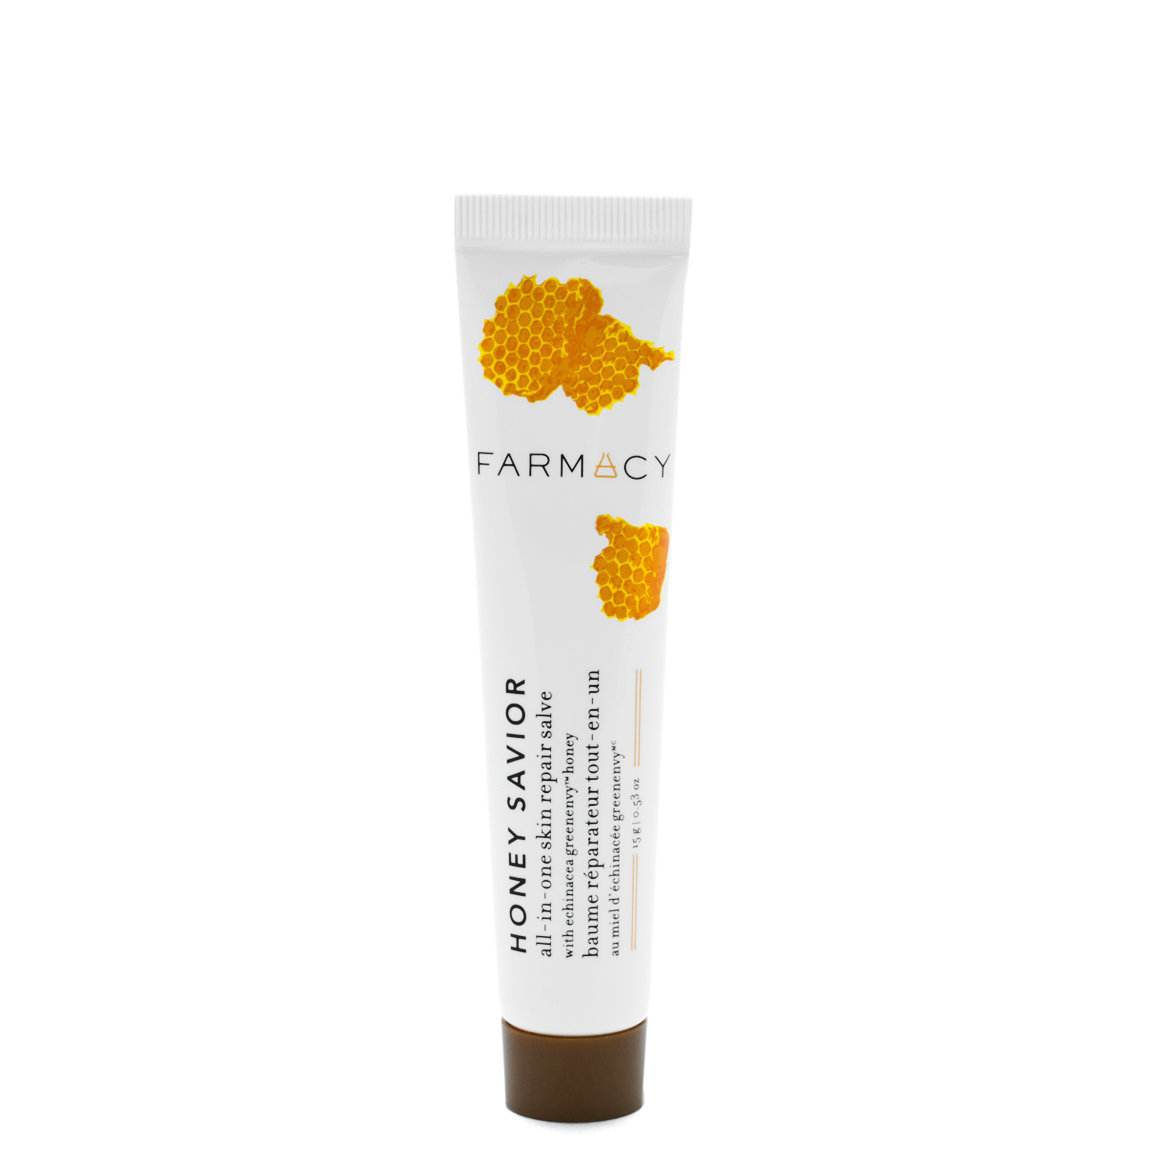 Farmacy Honey Savior All-In-One Skin Repair Salve 0.53 oz product smear.